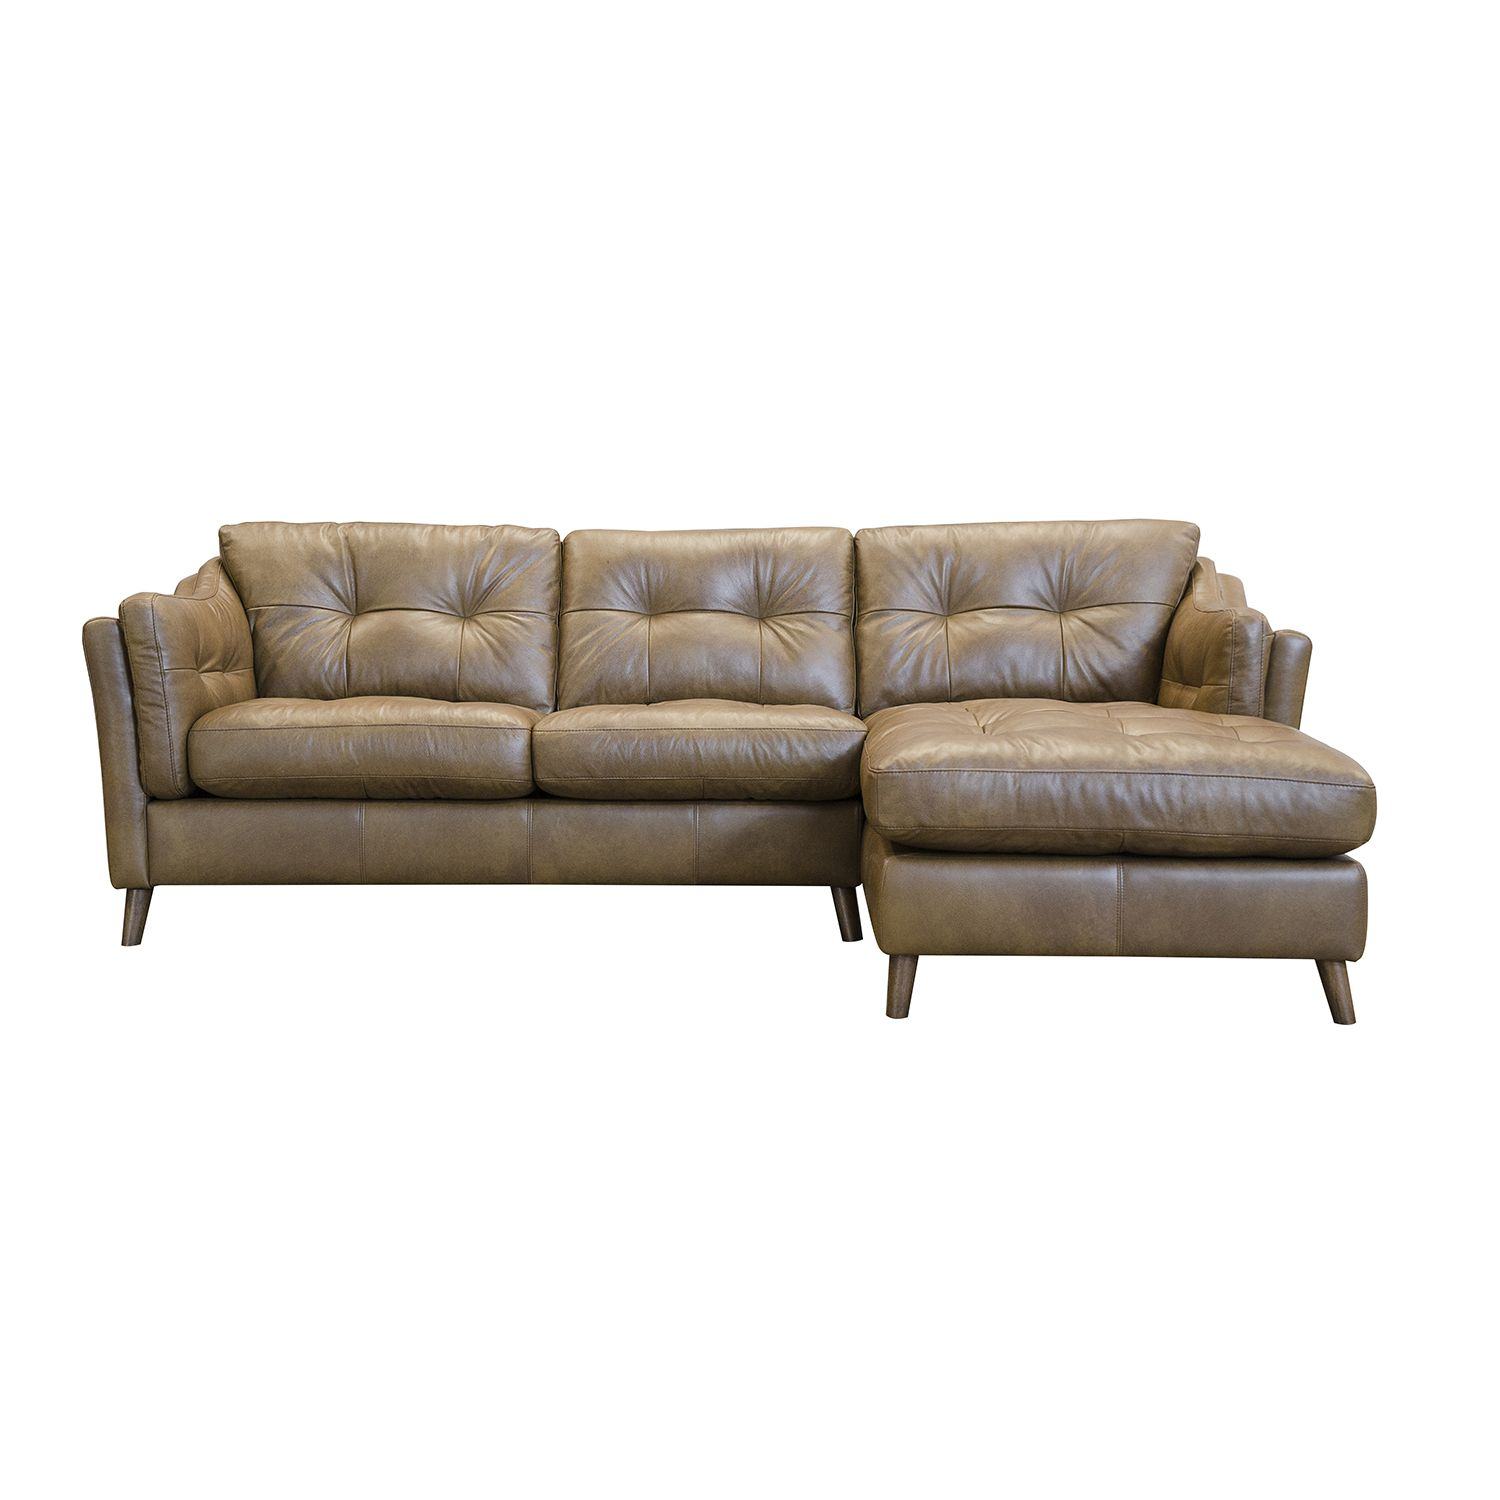 Image of Alexander & James Saddler Right Hand Chaise